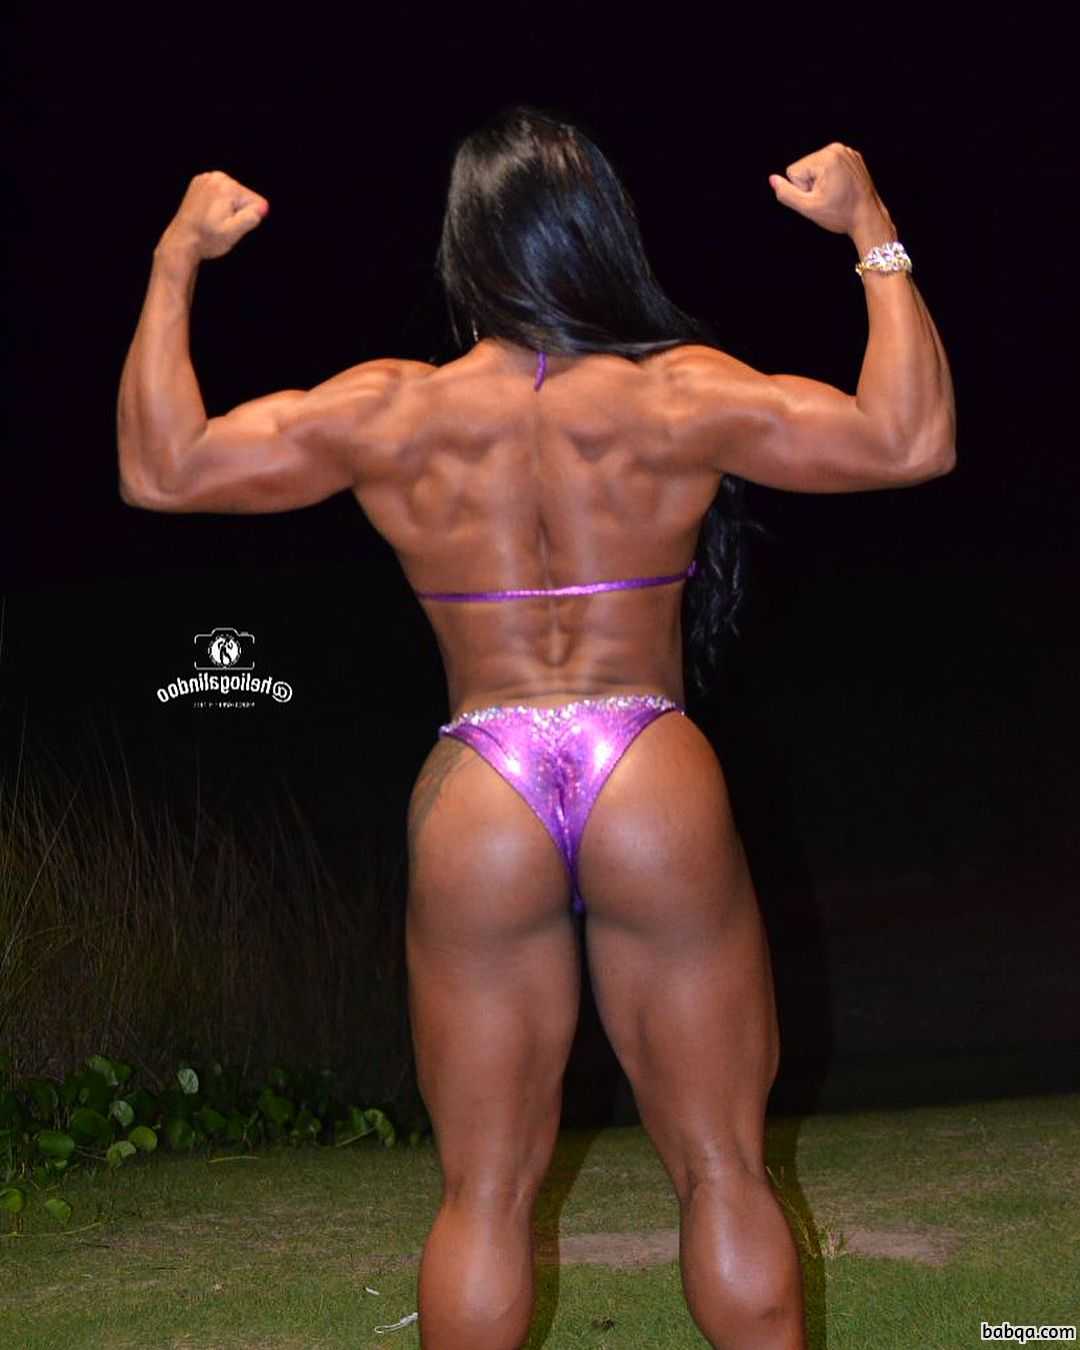 spicy female bodybuilder with muscular body and toned booty photo from flickr